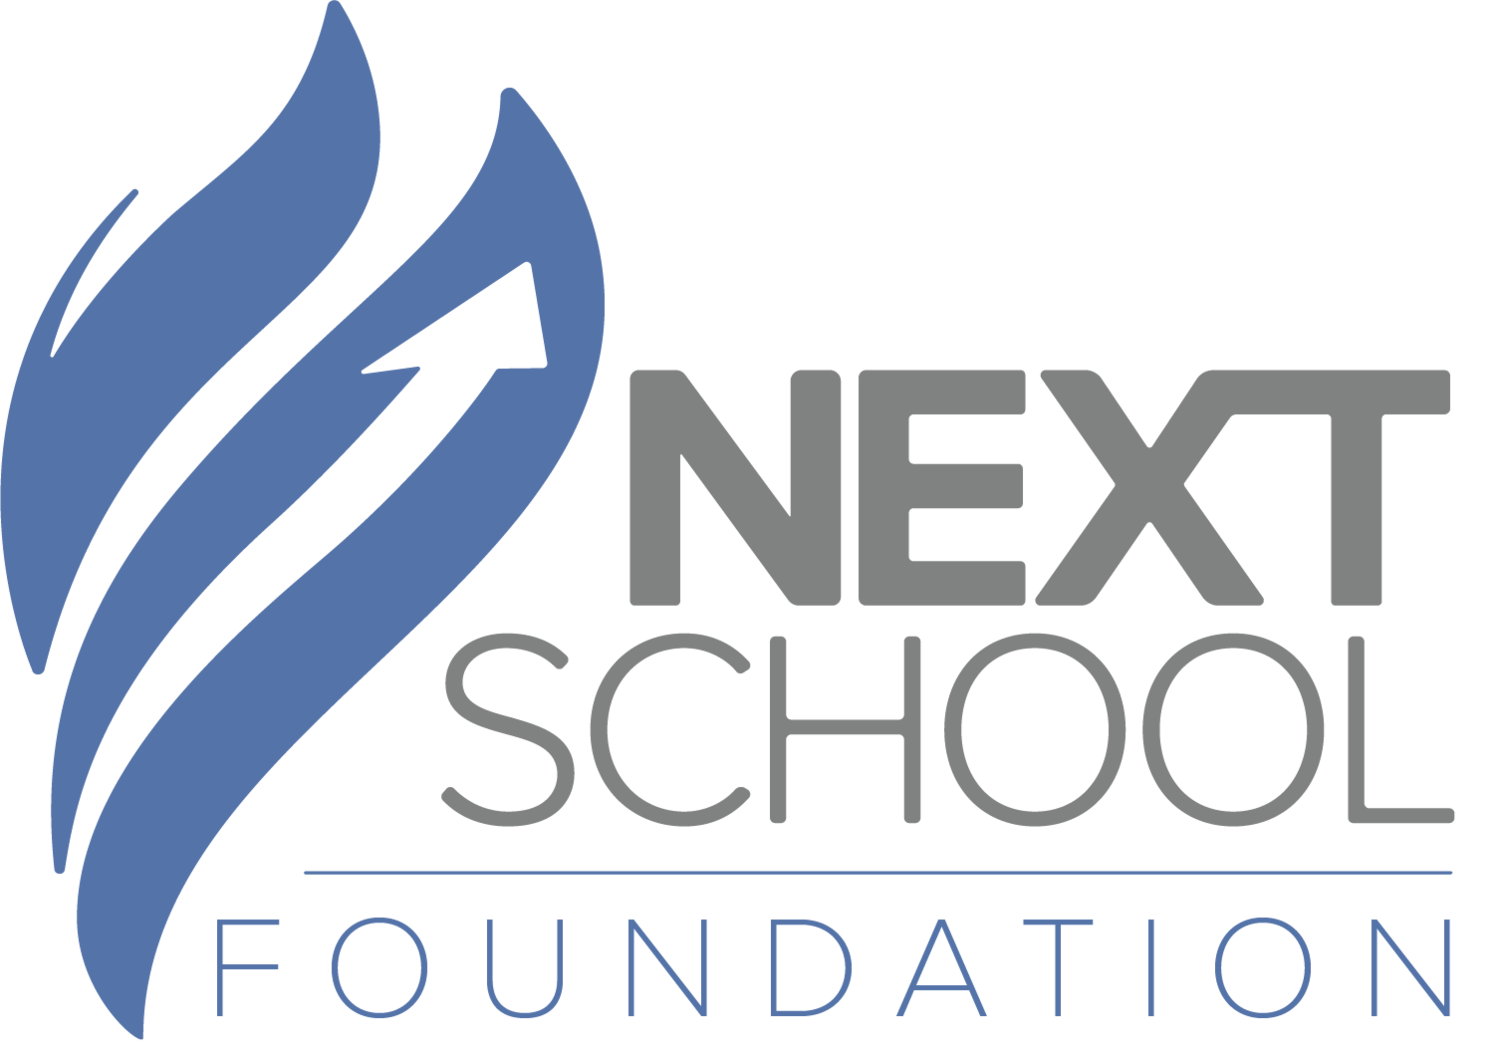 NEXT School Foundation